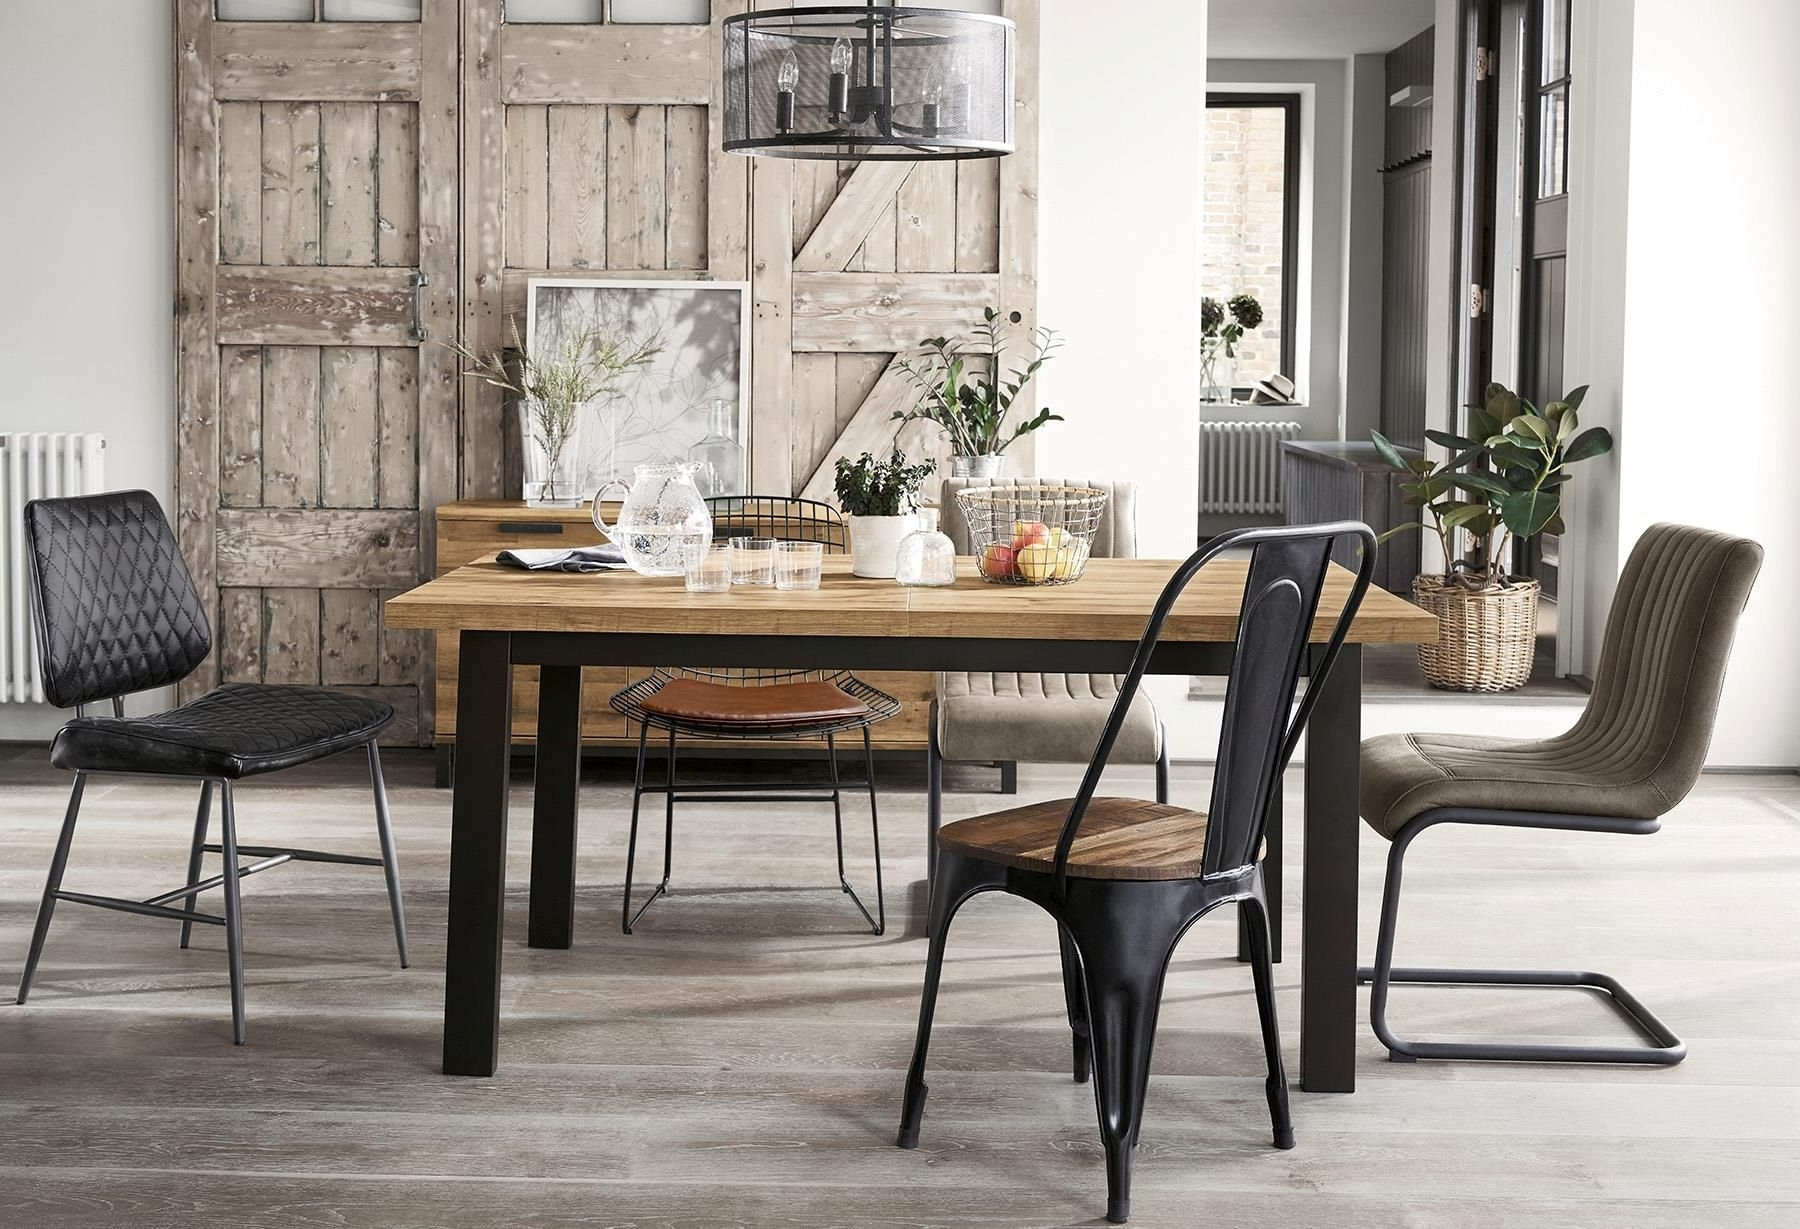 Extendable Dining Tables With 8 Seats with Trendy Buy Bronx 6-8 Seater Extending Dining Table From The Next Uk Online